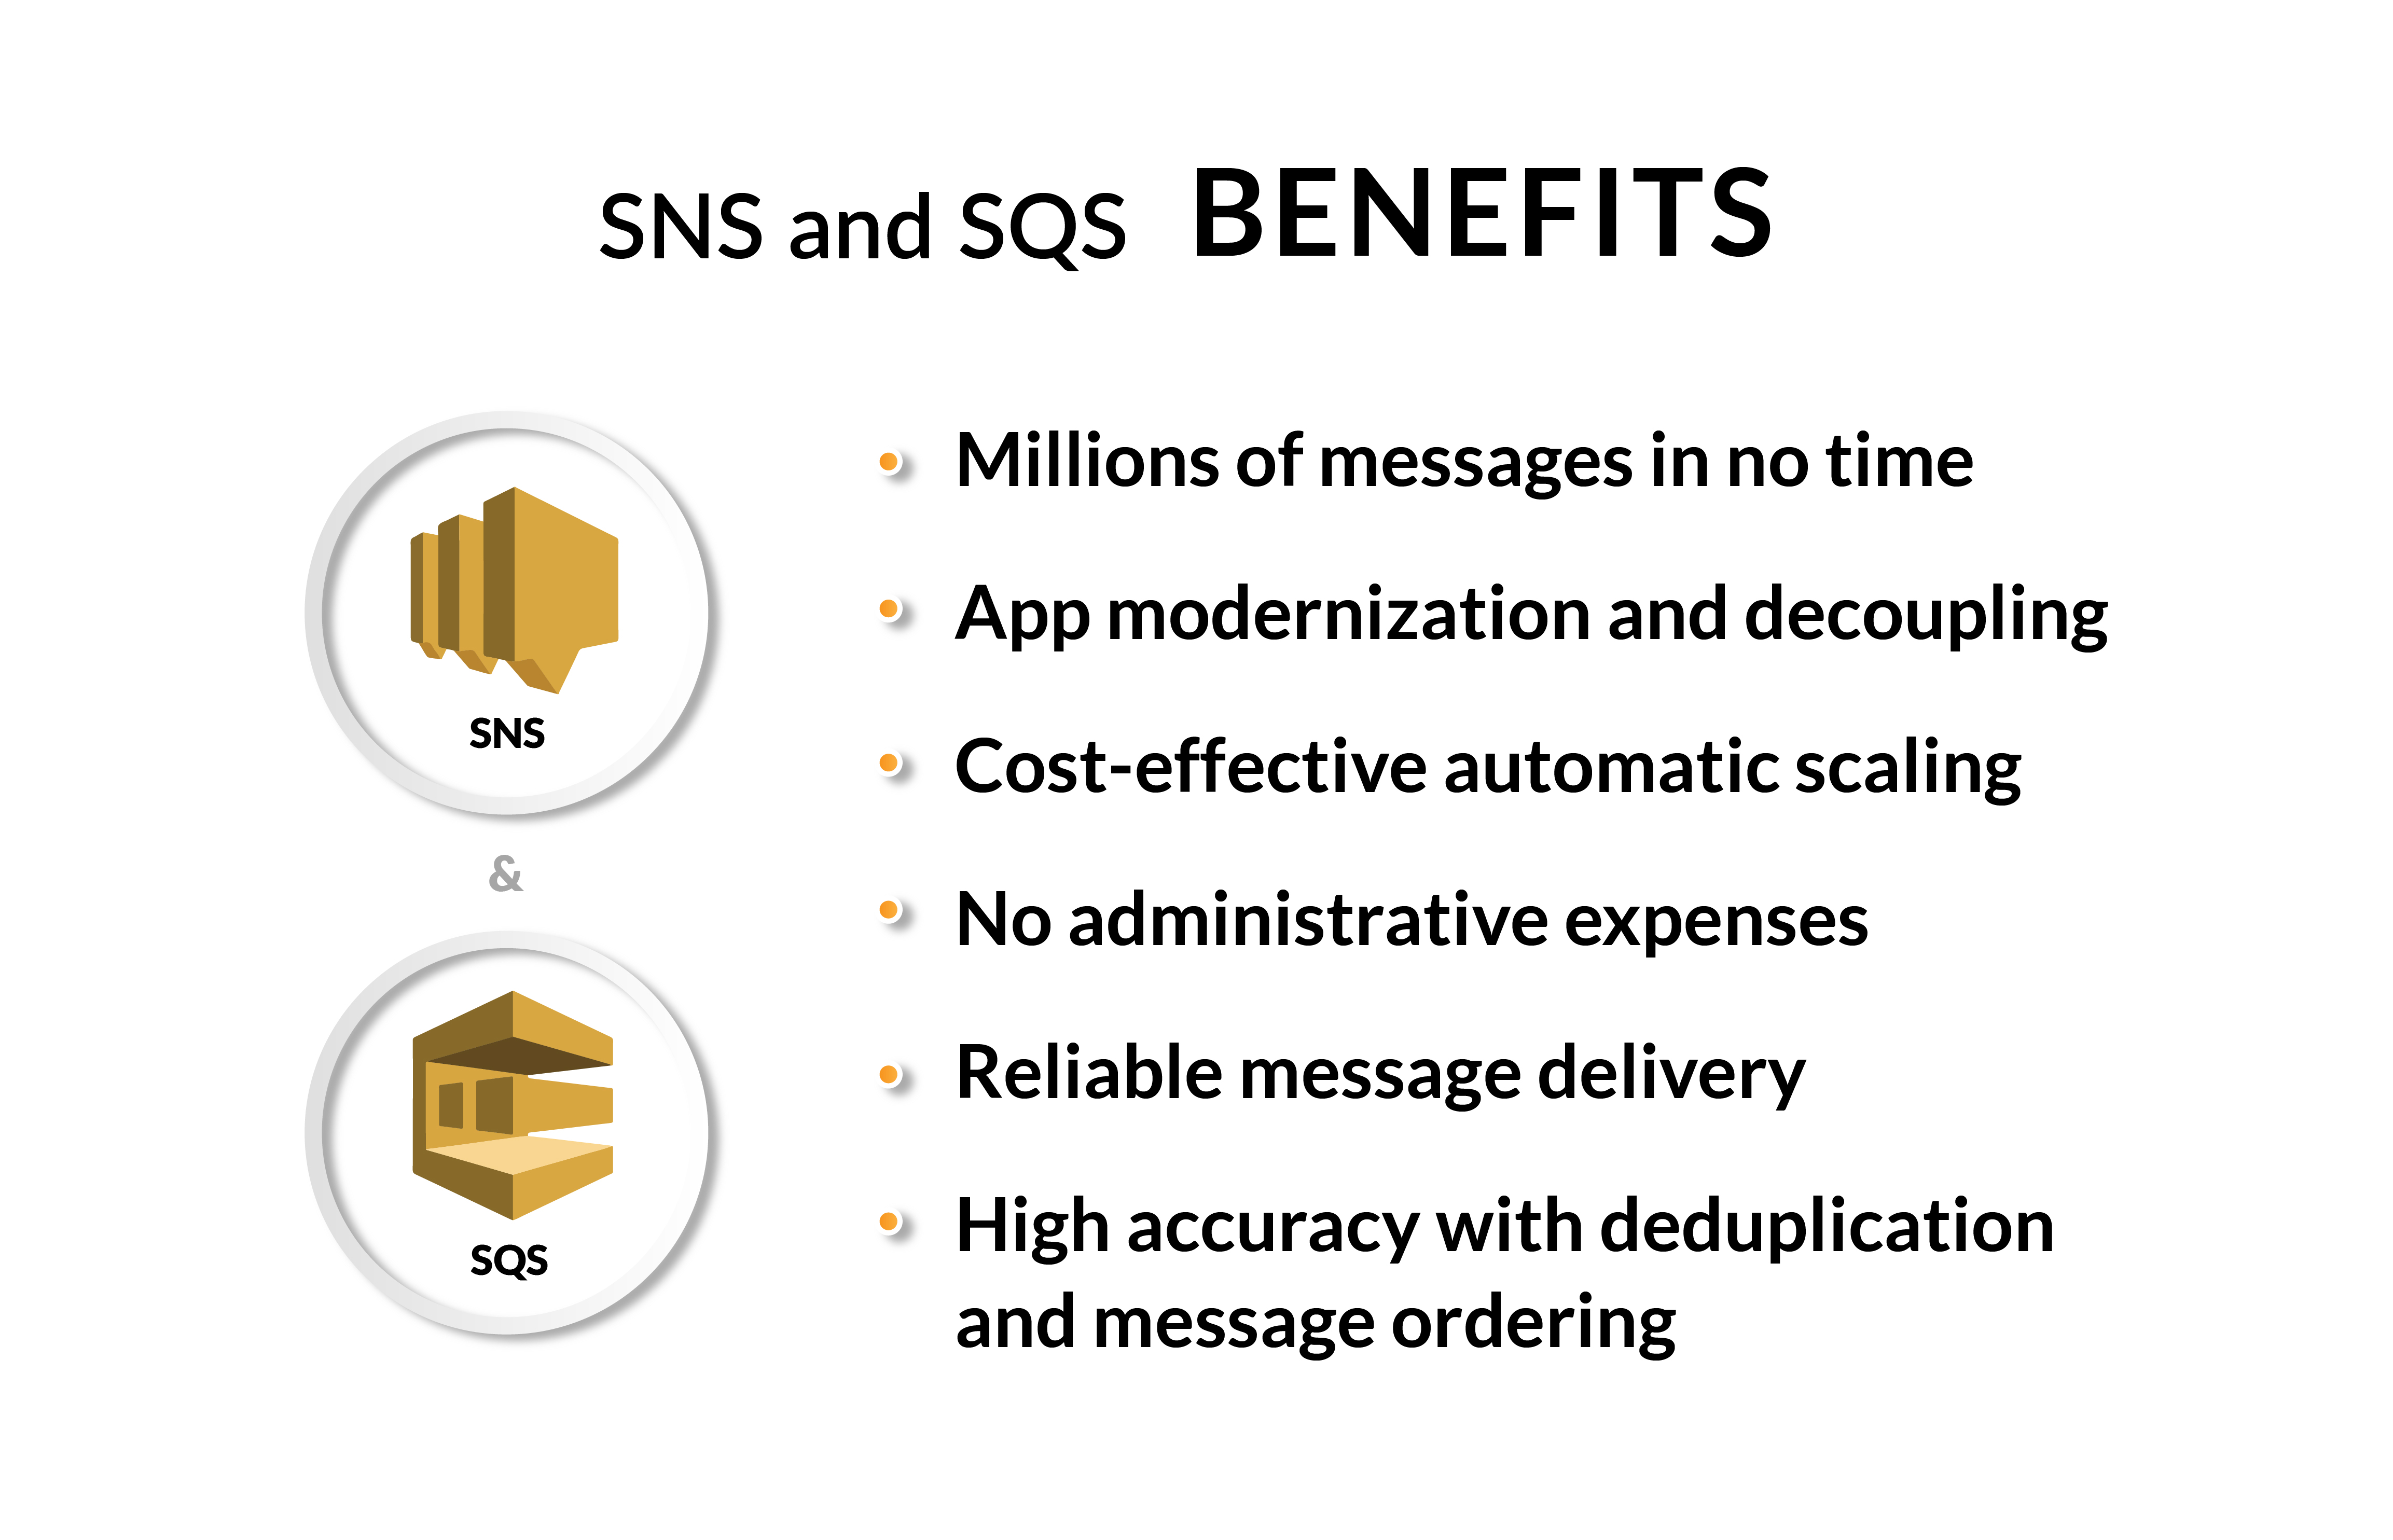 SNS and SQS benefits